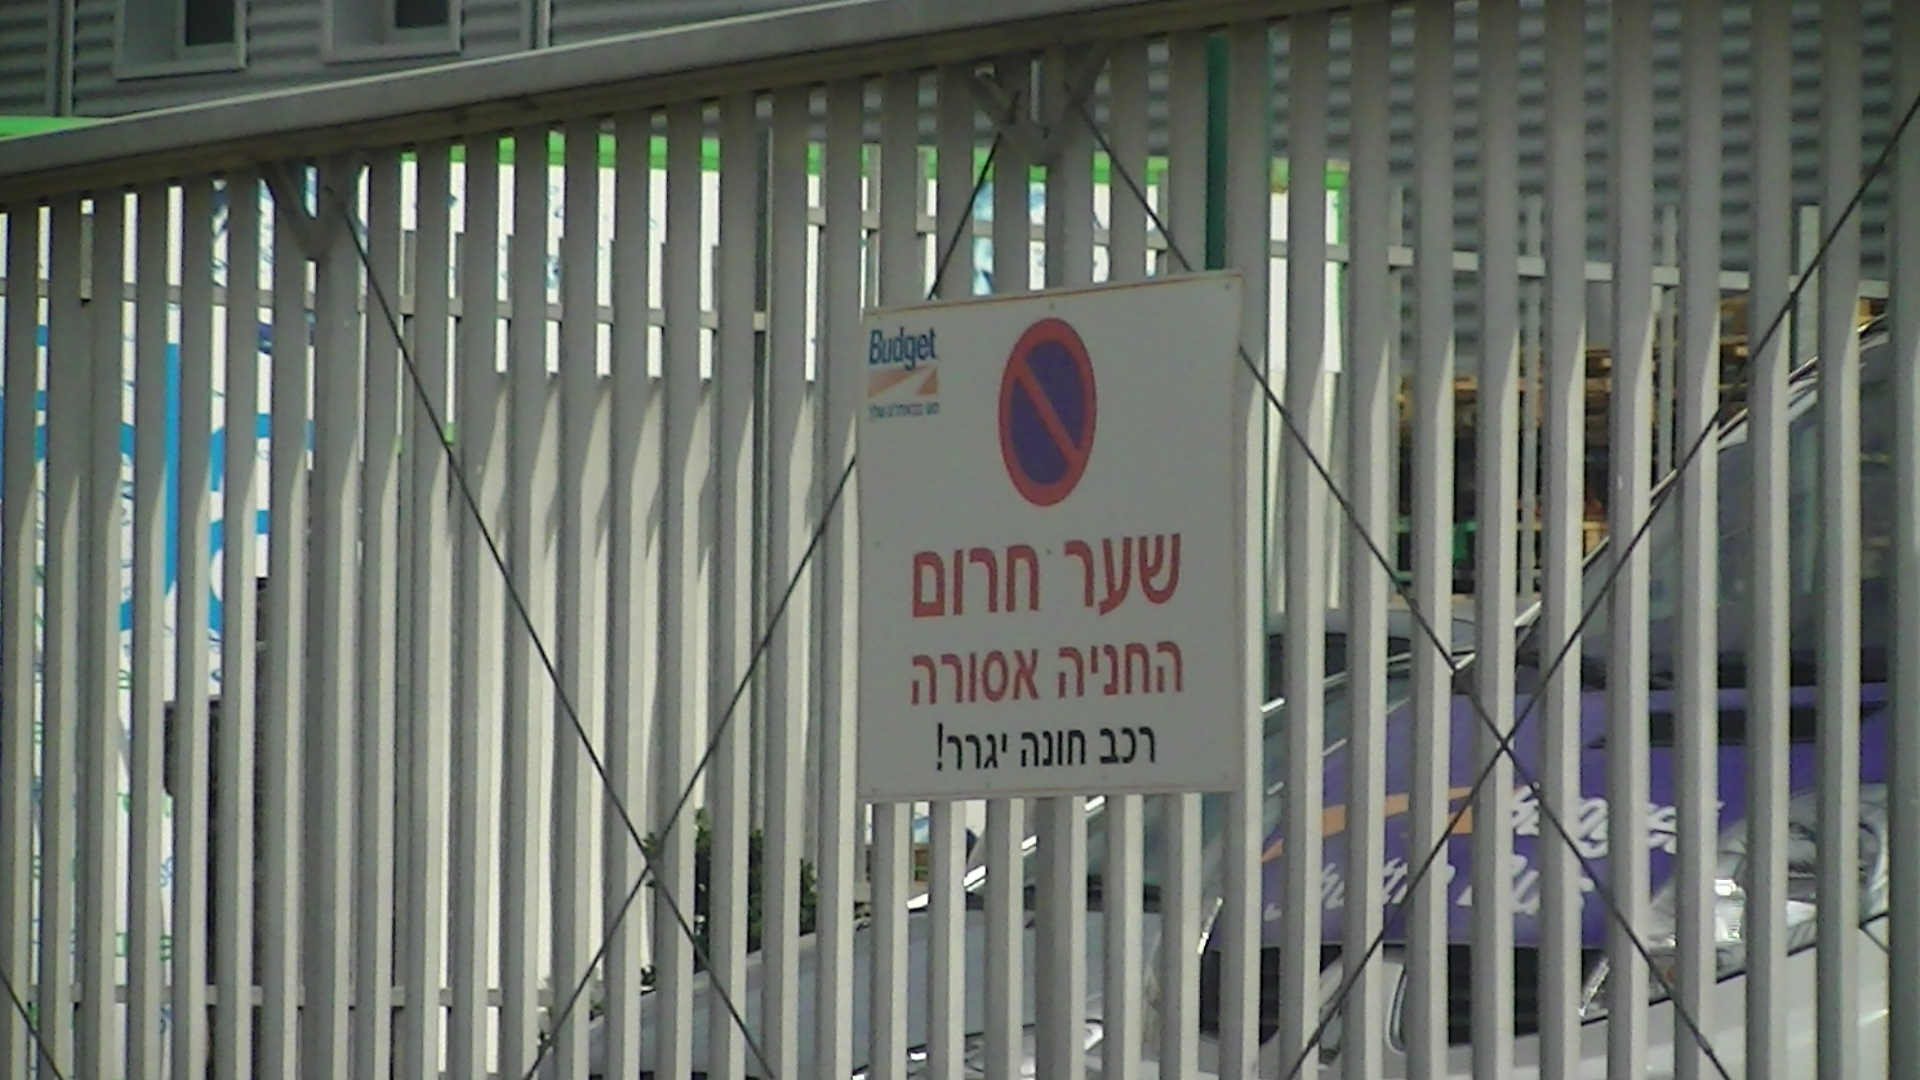 Offices of Budget Rent a Car, owned by Avis, in Tel Aviv, Airport City